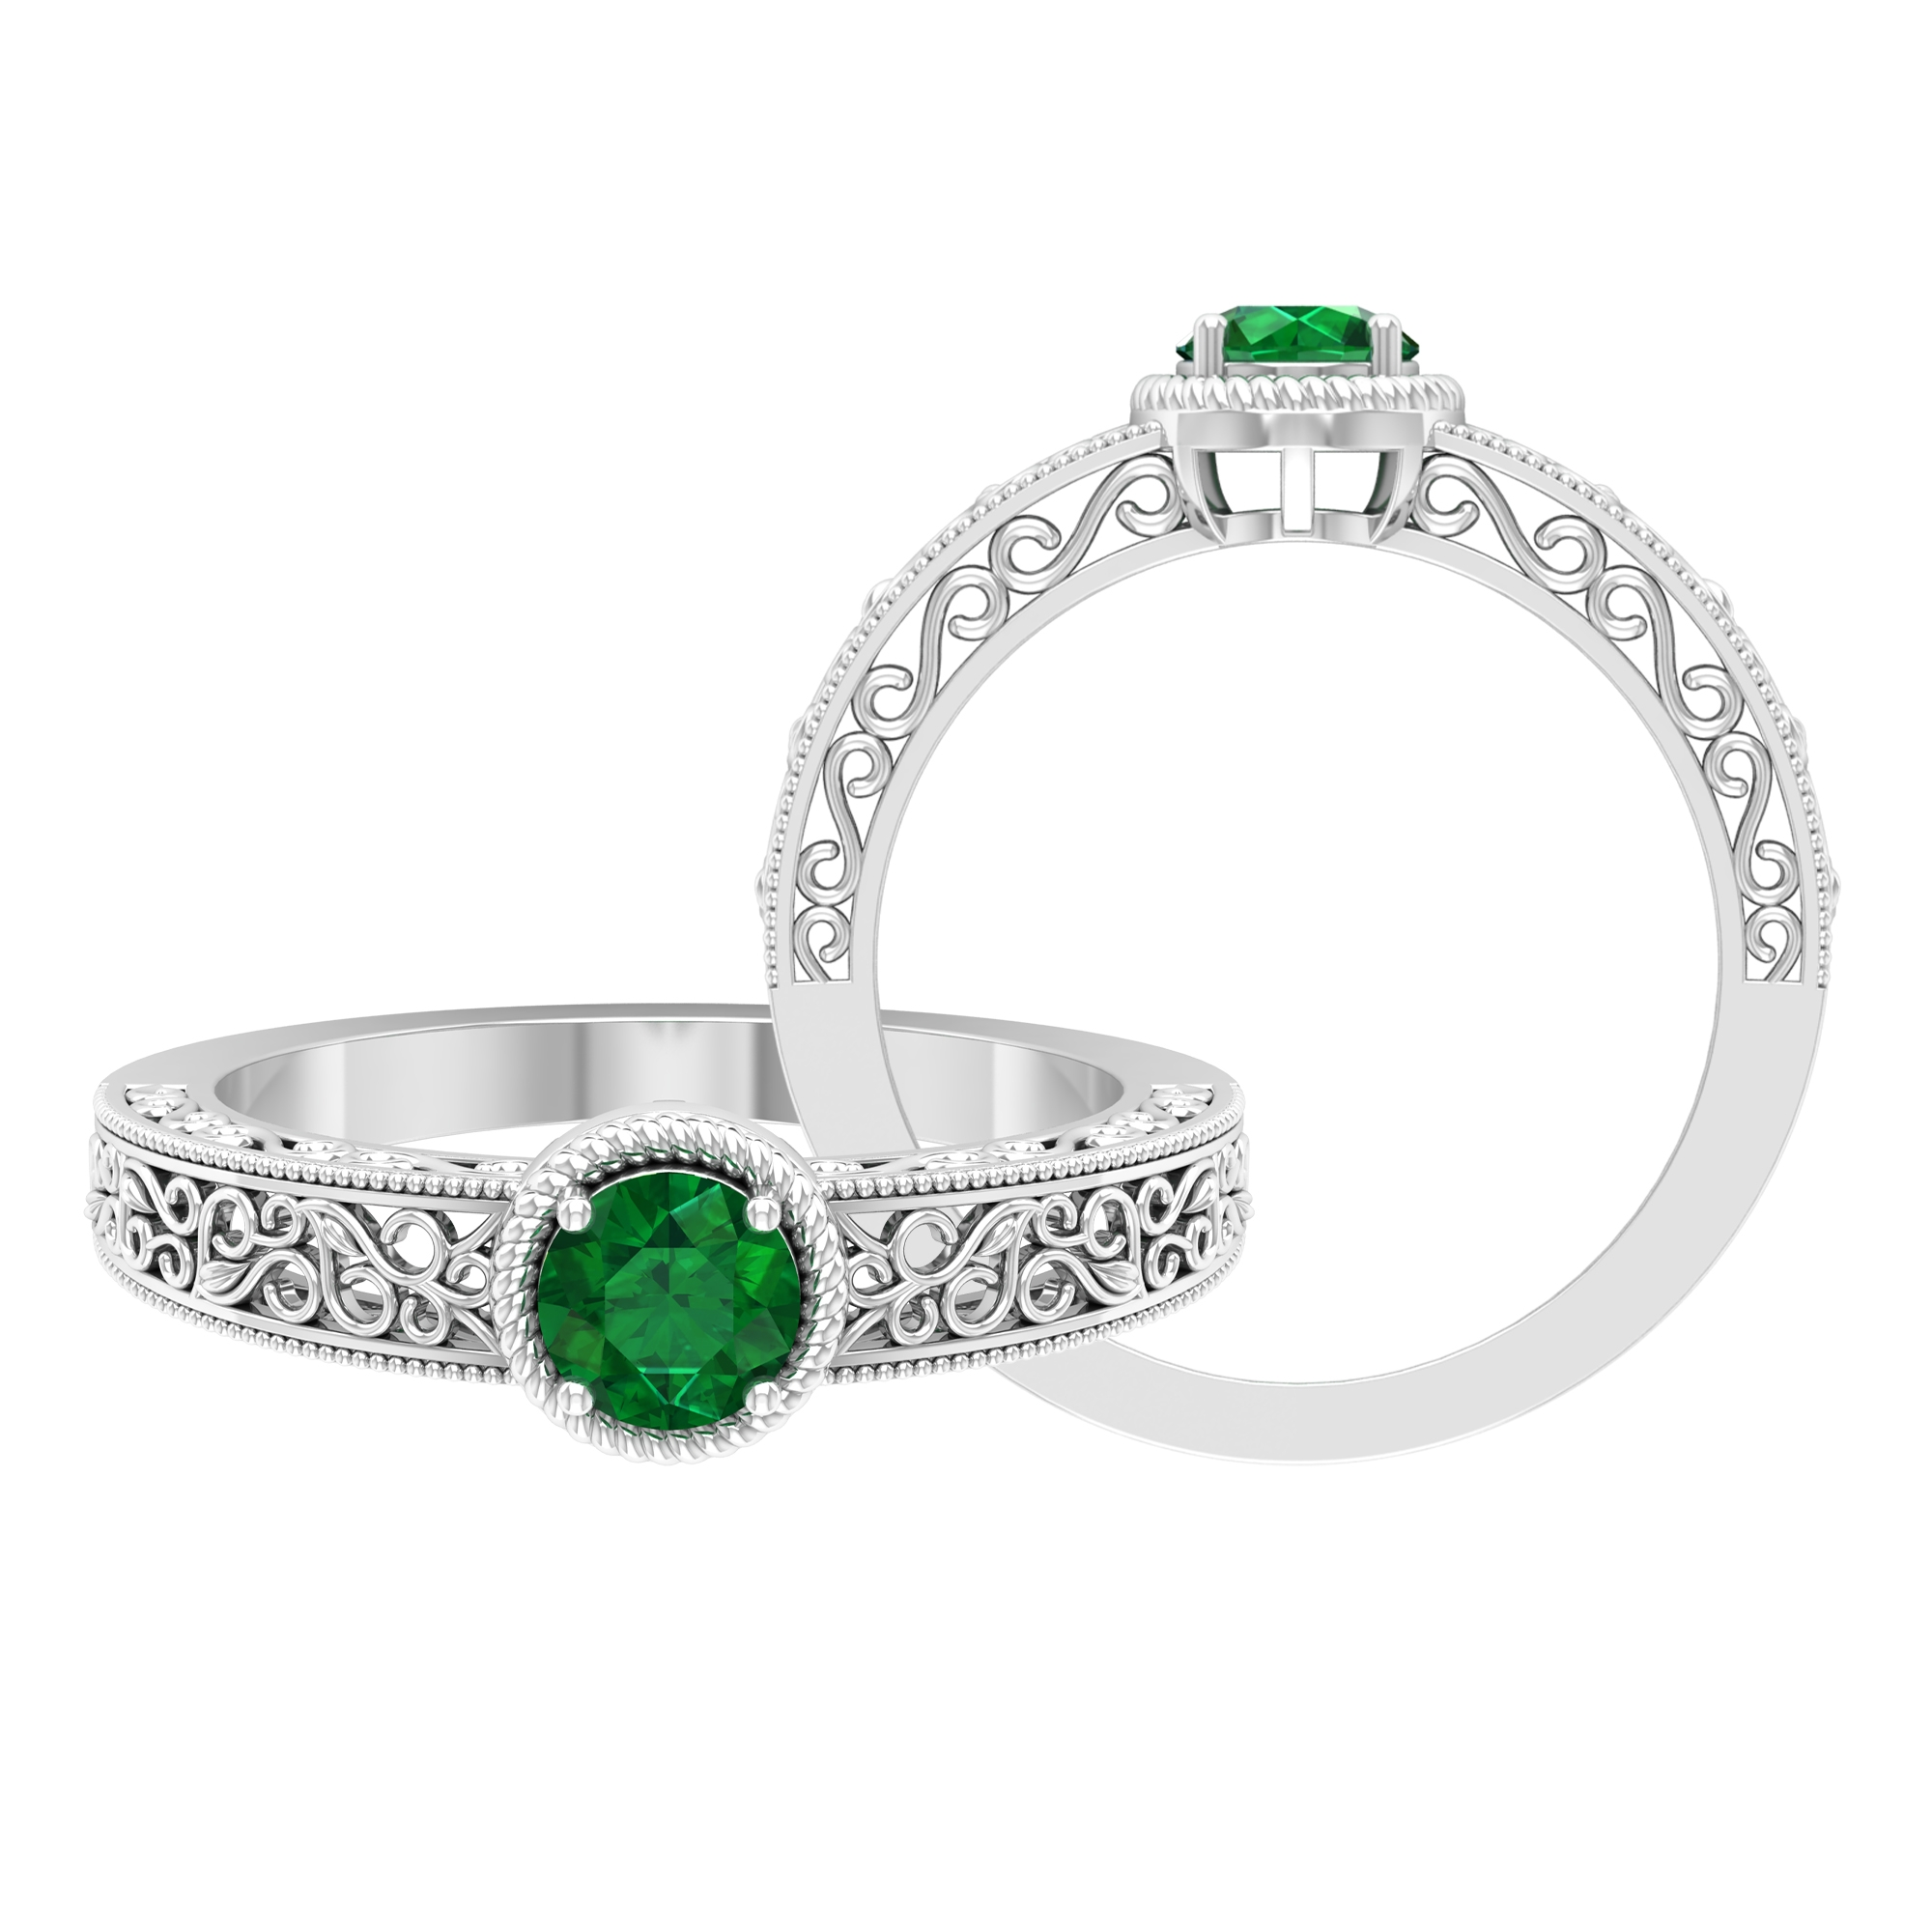 5 MM Round Cut Emerald Solitaire Ring in Prong Setting with Rope Frame and Filigree Details